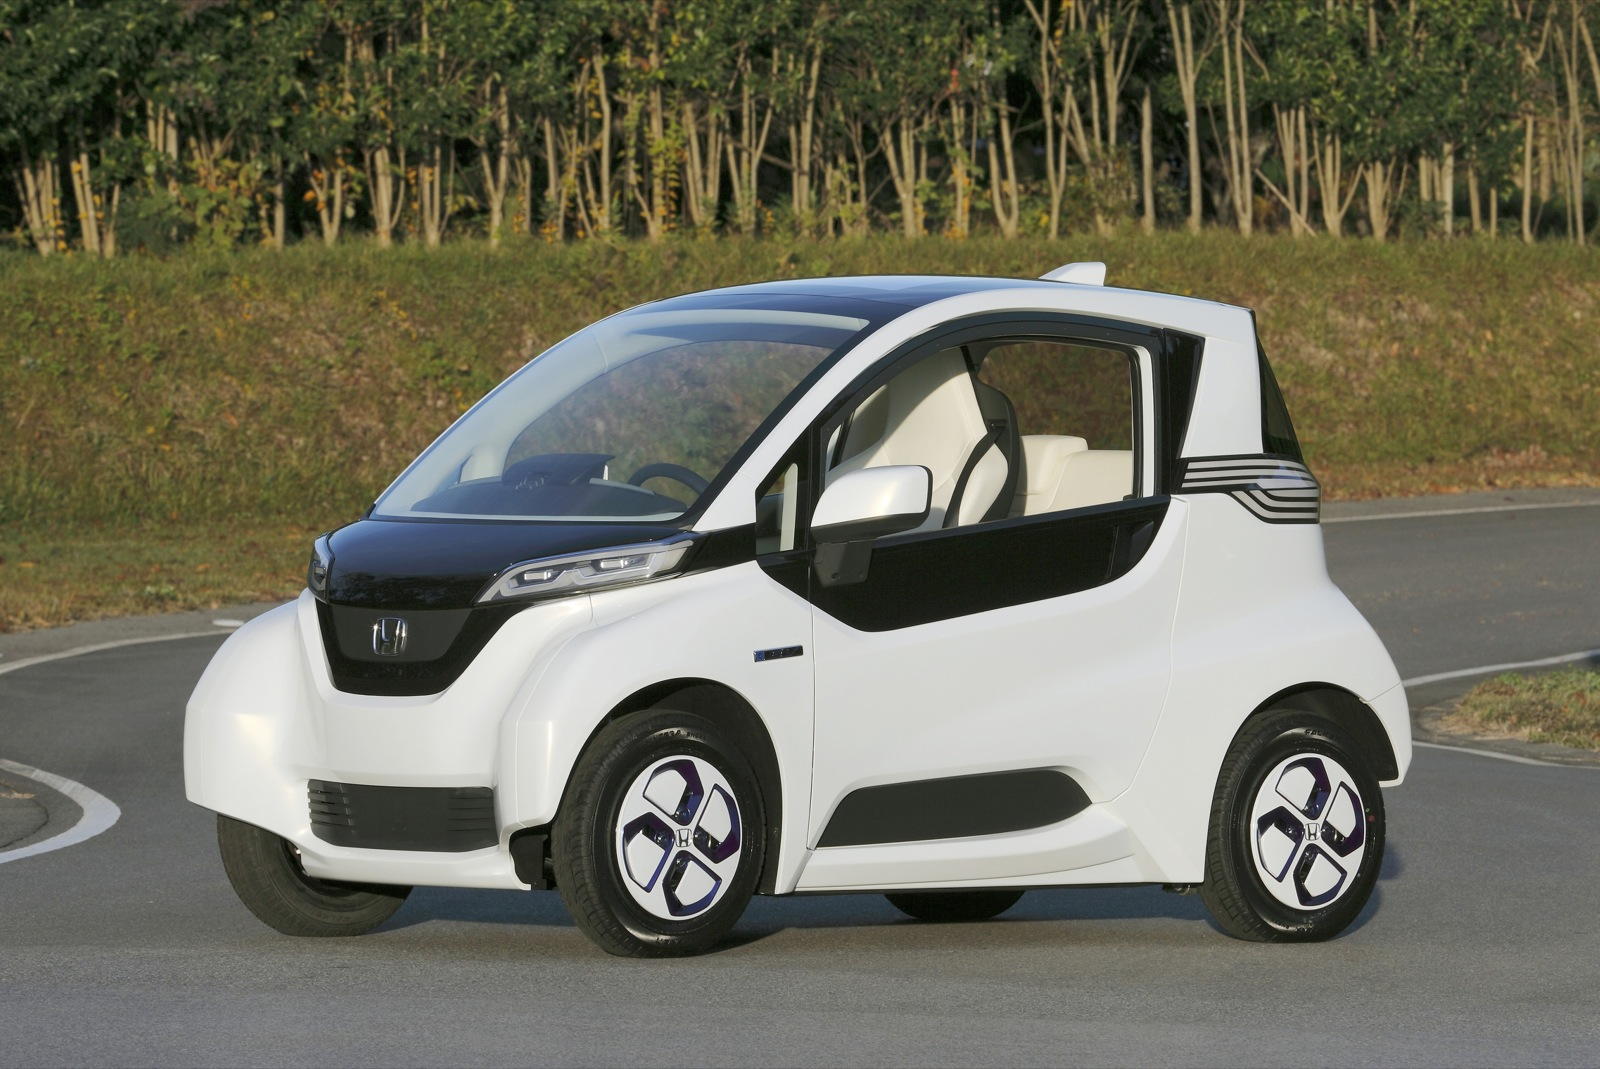 Honda MicroCommuter An Innovative Electric Car Too Small For